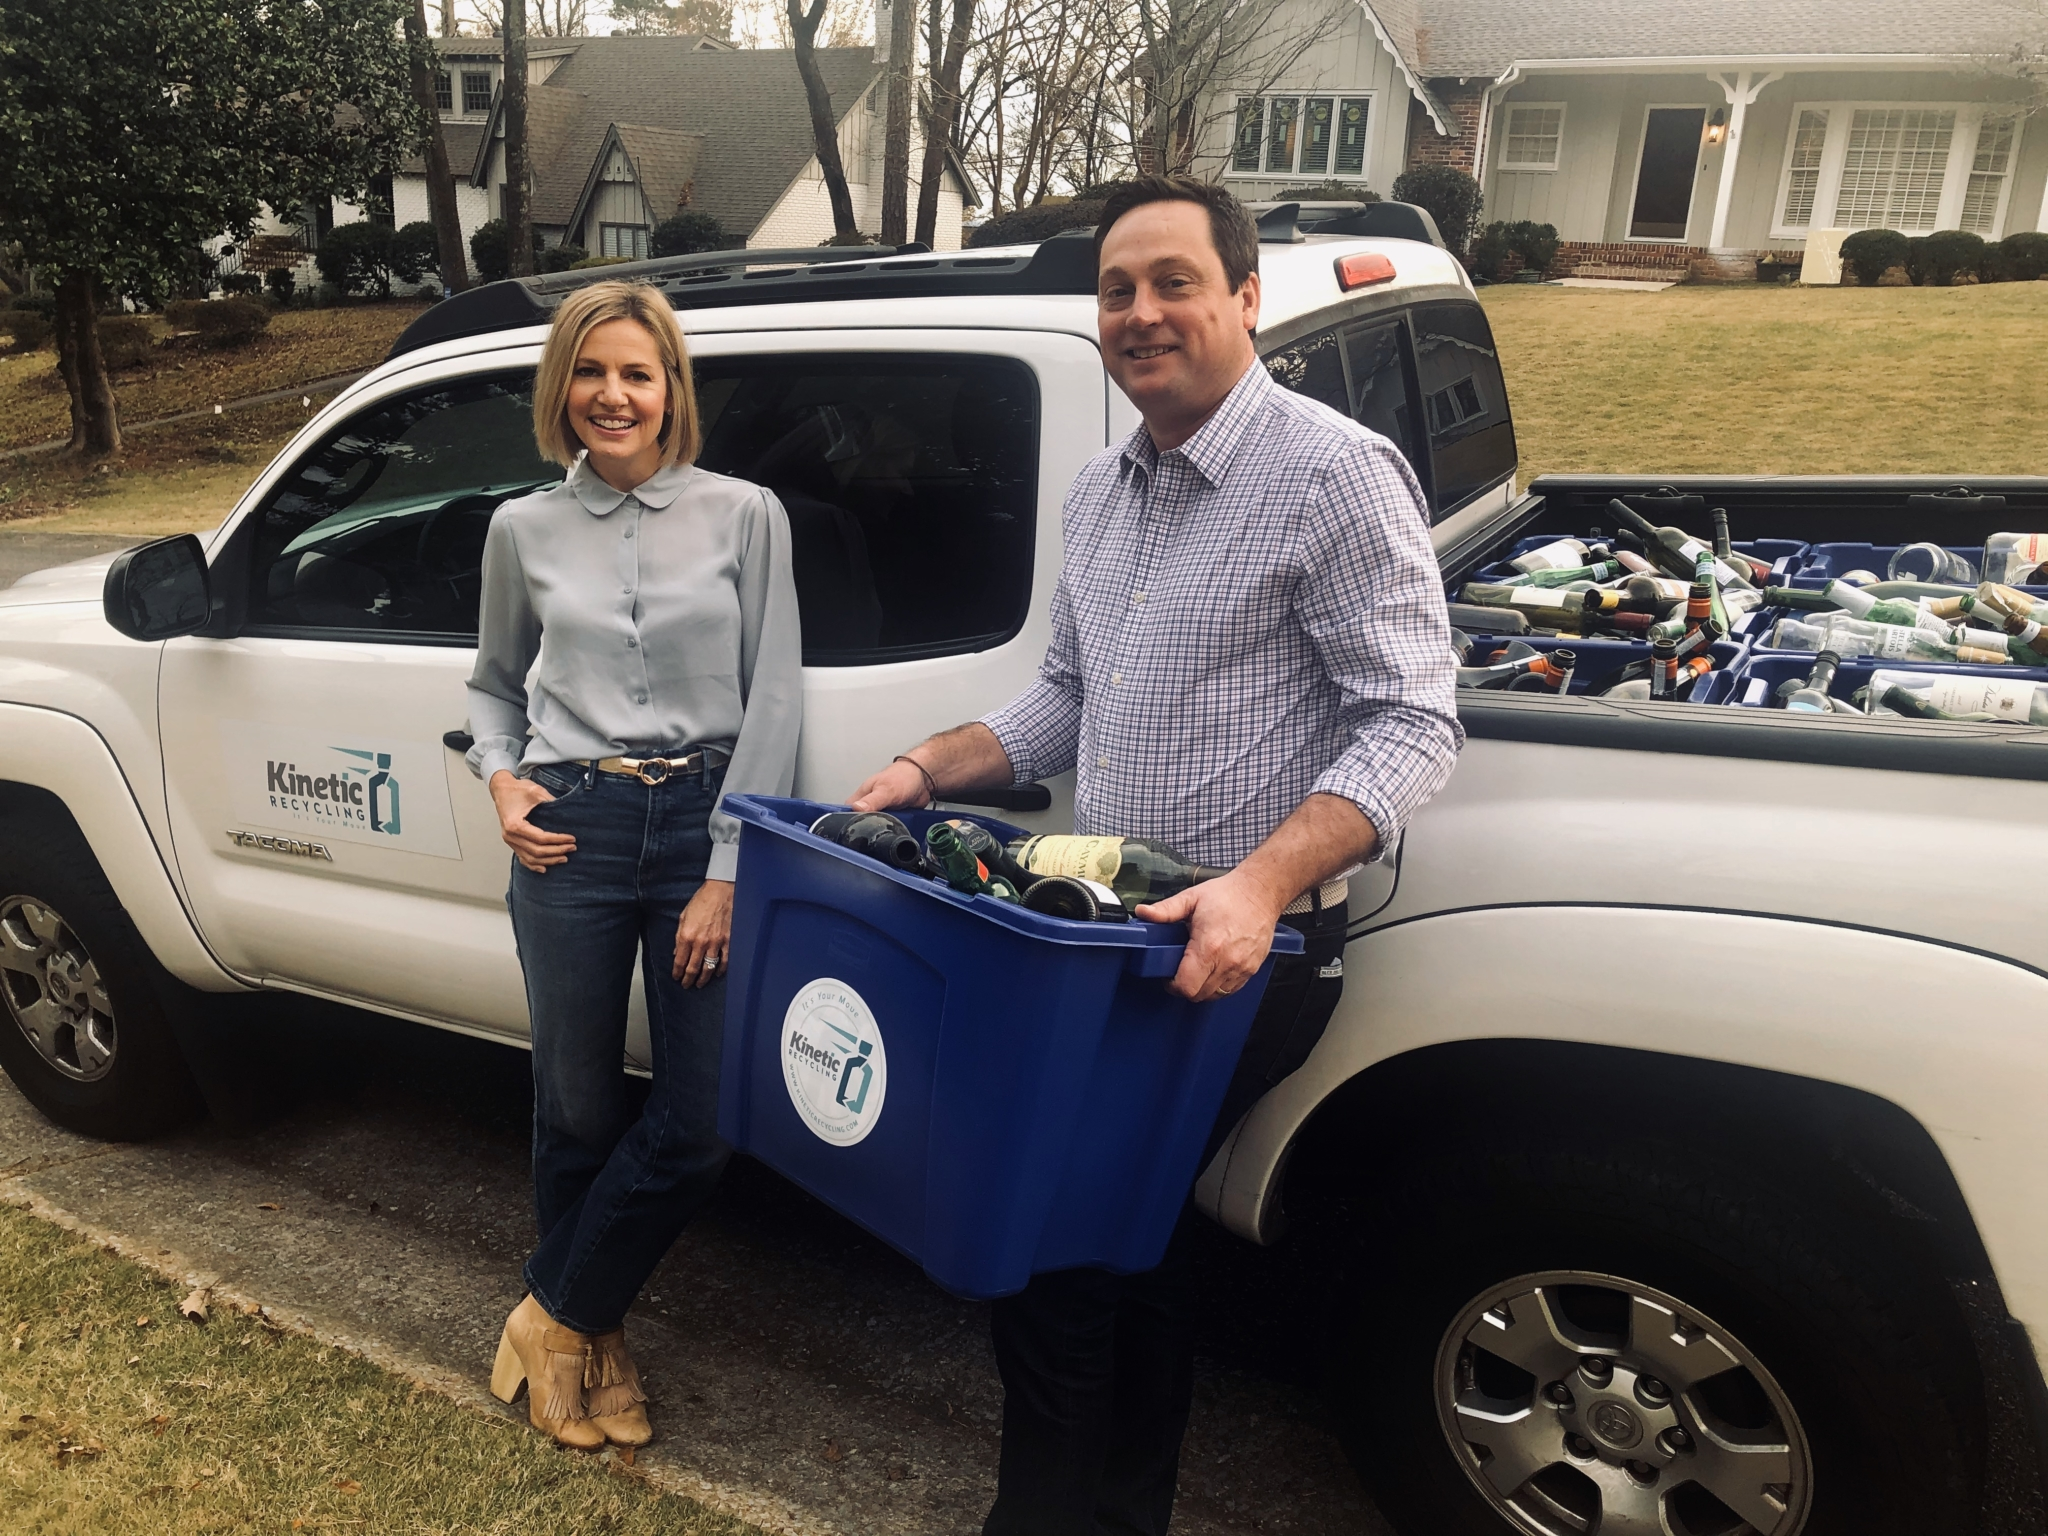 Bham area's only curbside glass recycling program is suspended